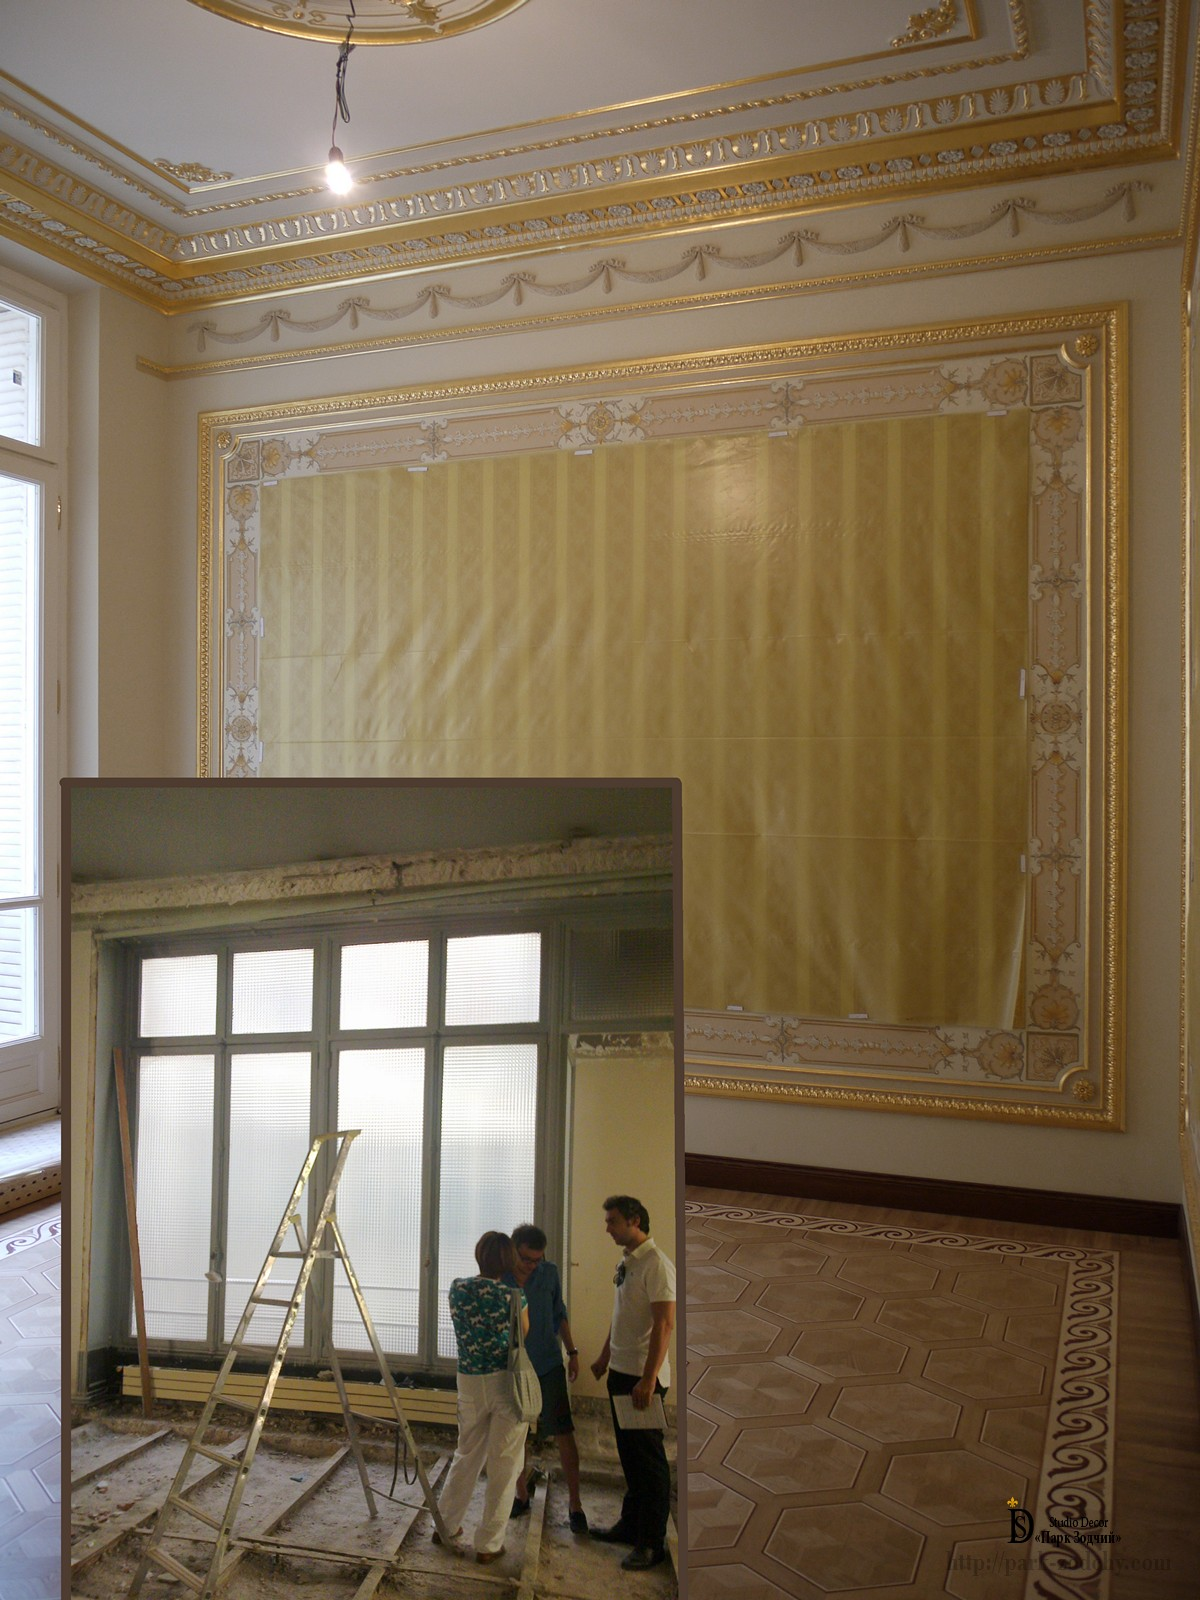 Planning for installation of stucco decoration